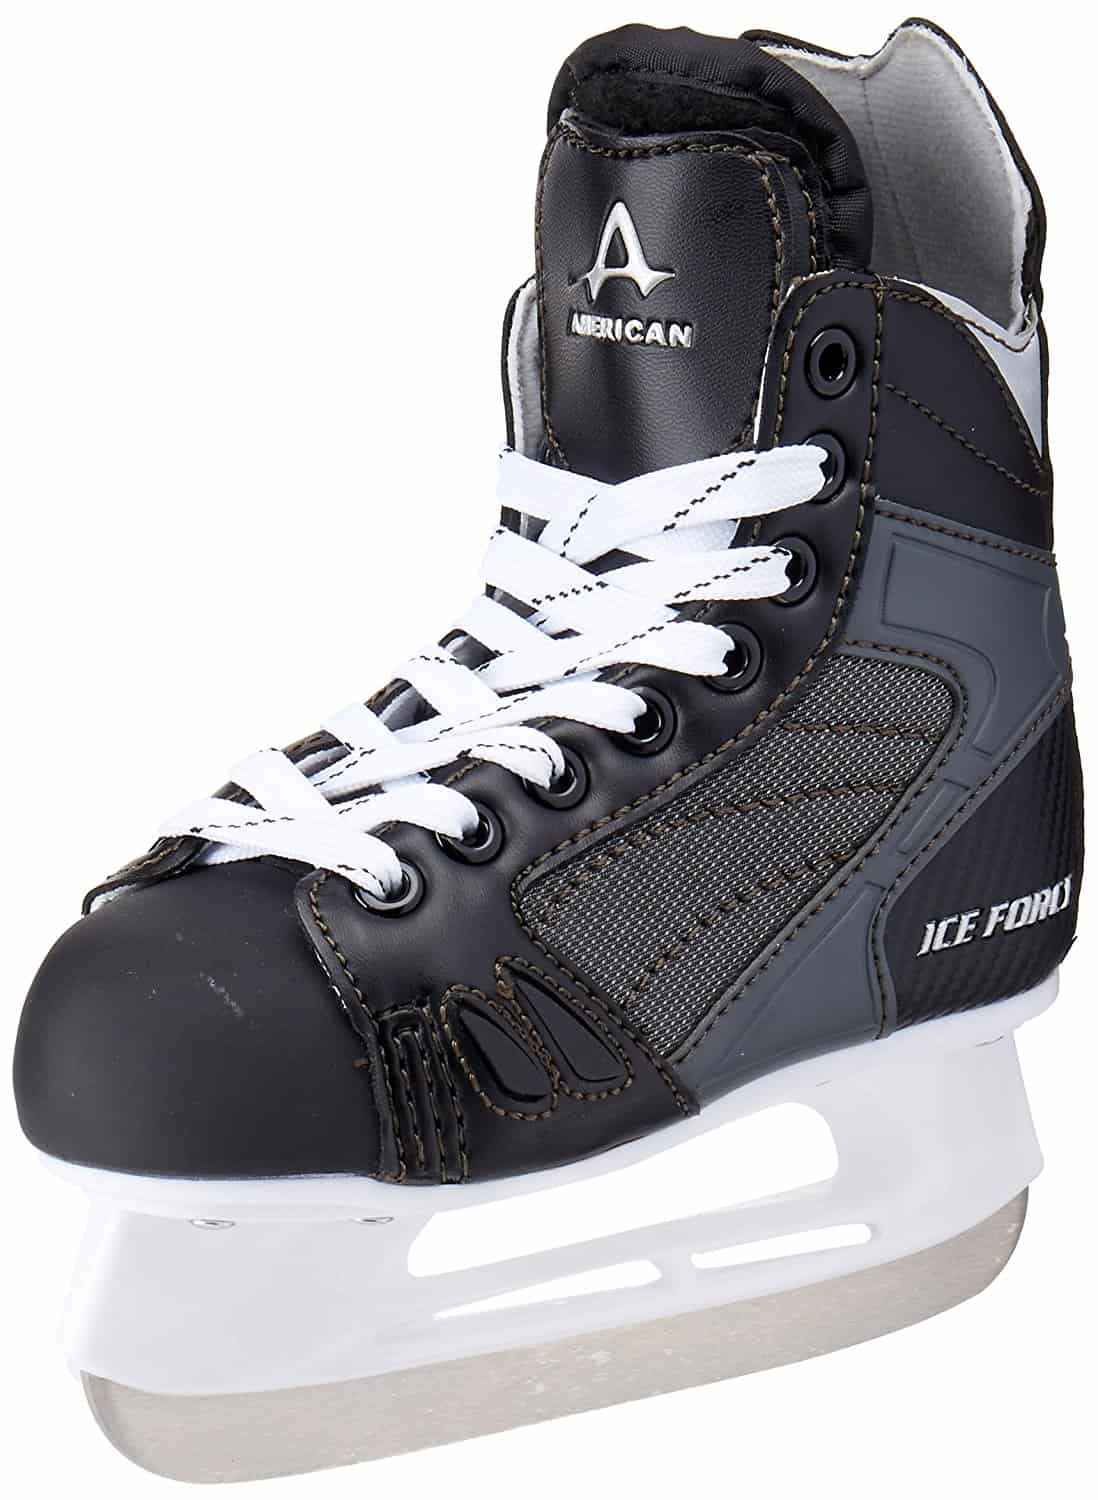 American Athletic Shoe Boy's Ice Force.